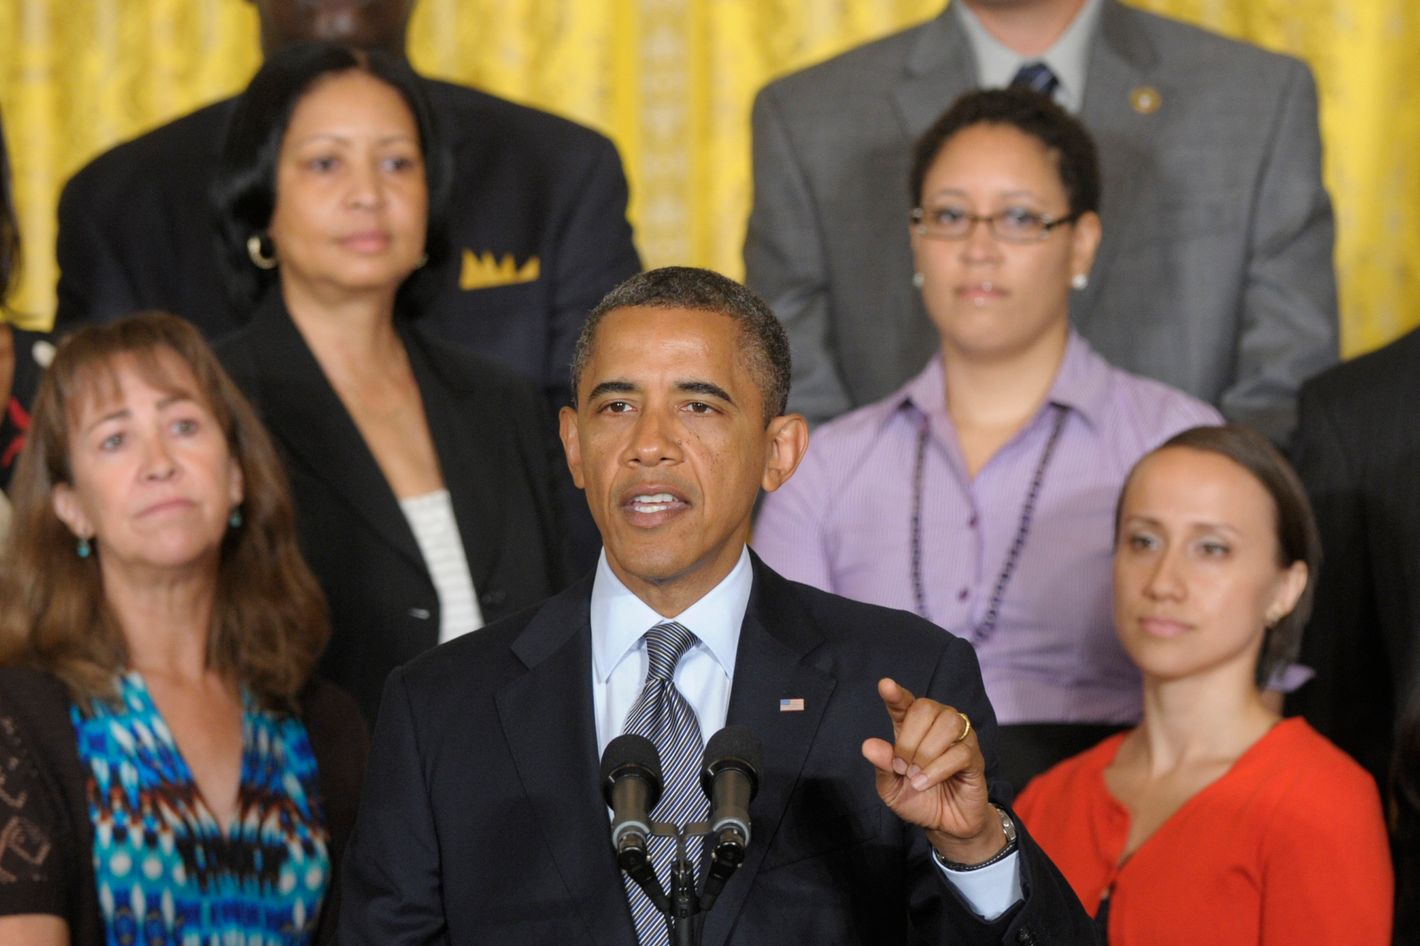 President Barack Obama calls on Congress to pass a temporary, one-year extension of the Bush-era tax cuts for people who make less than $250,000 a year, during a statement in the East Room of the White House in Washington, Monday, July 9, 2012.